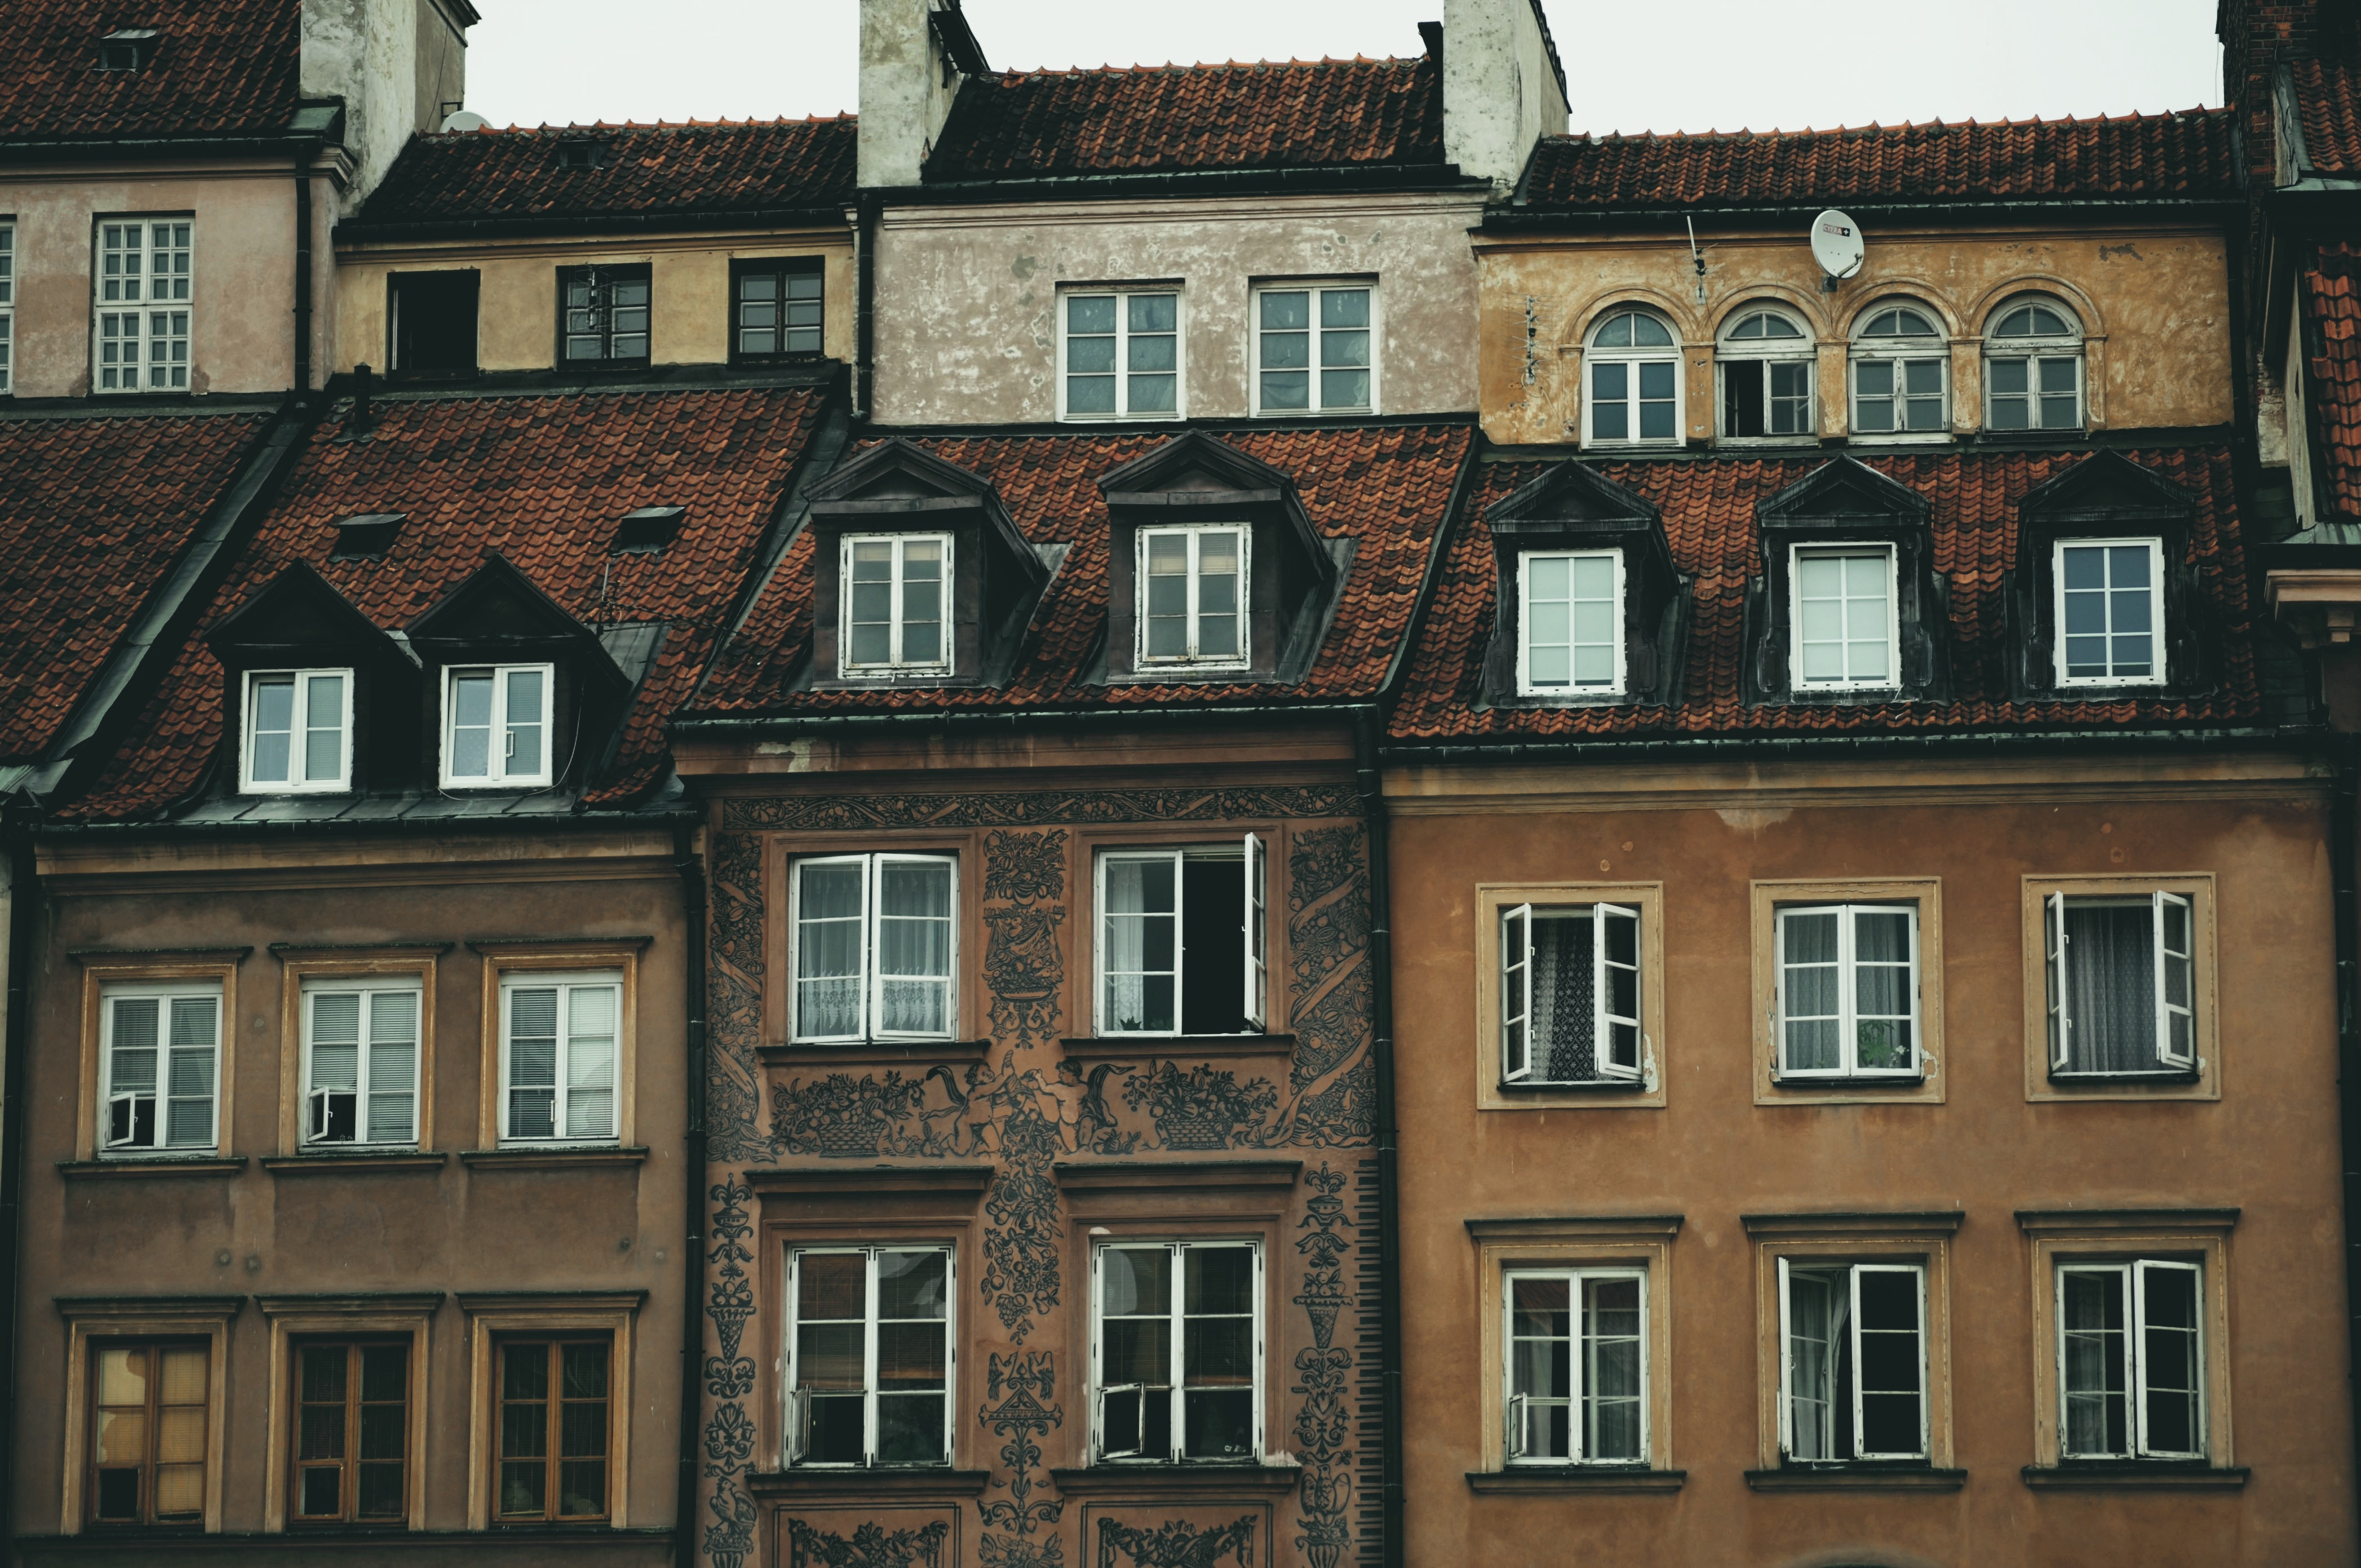 traditional buildings in Poland